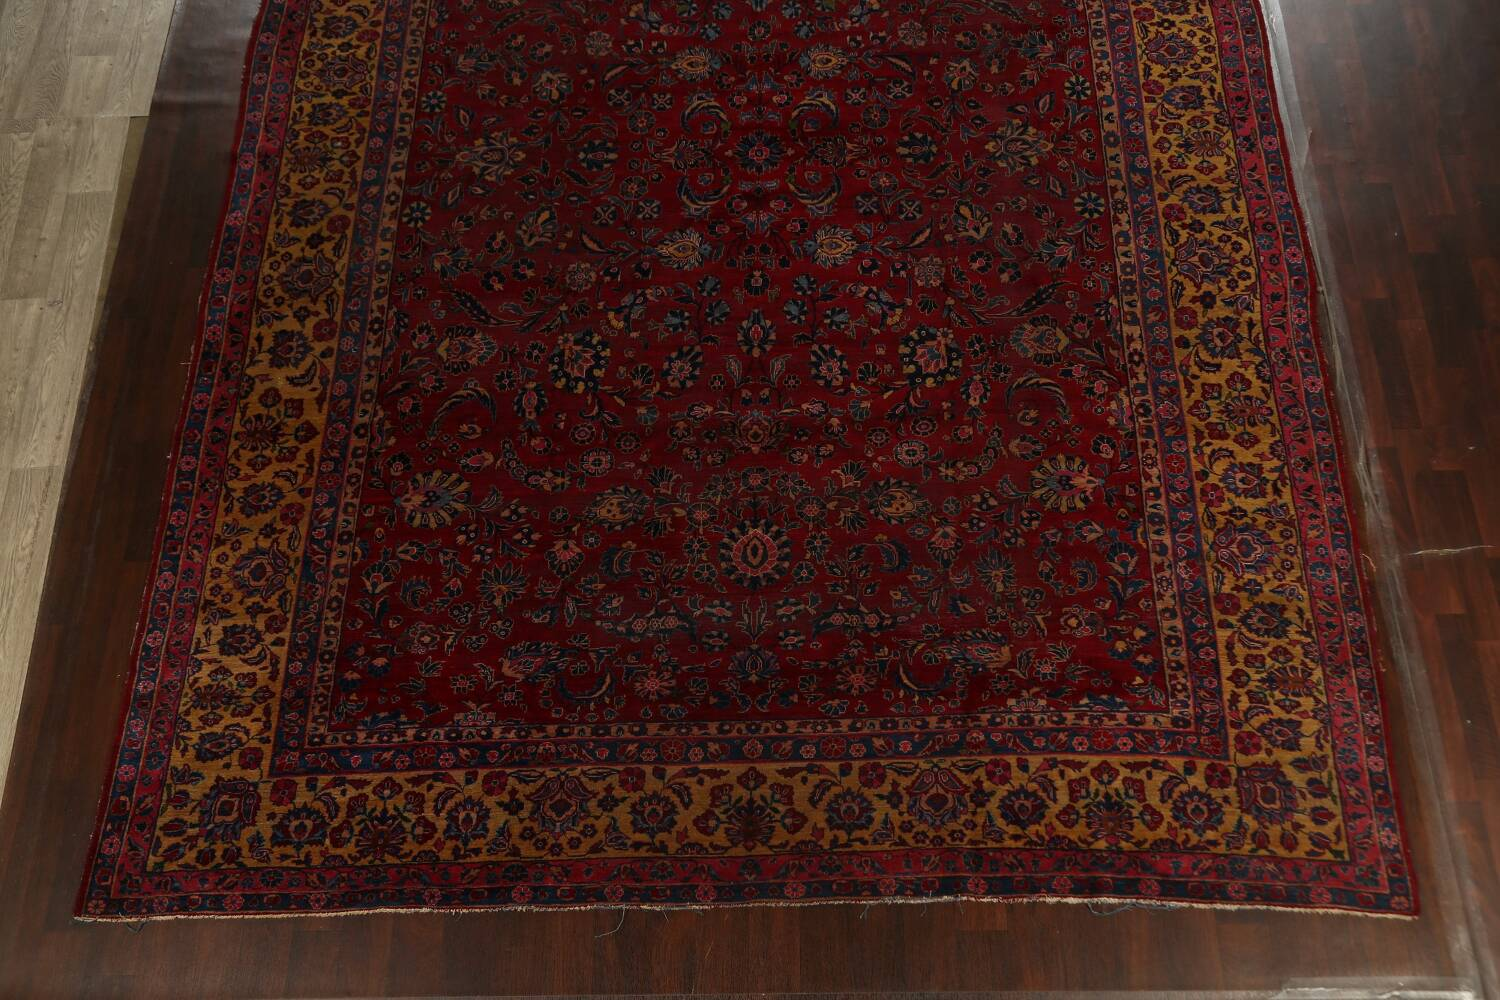 Pre-1900 Antique Vegetable Dye Sarouk Persian Area Rug 11x15 image 8